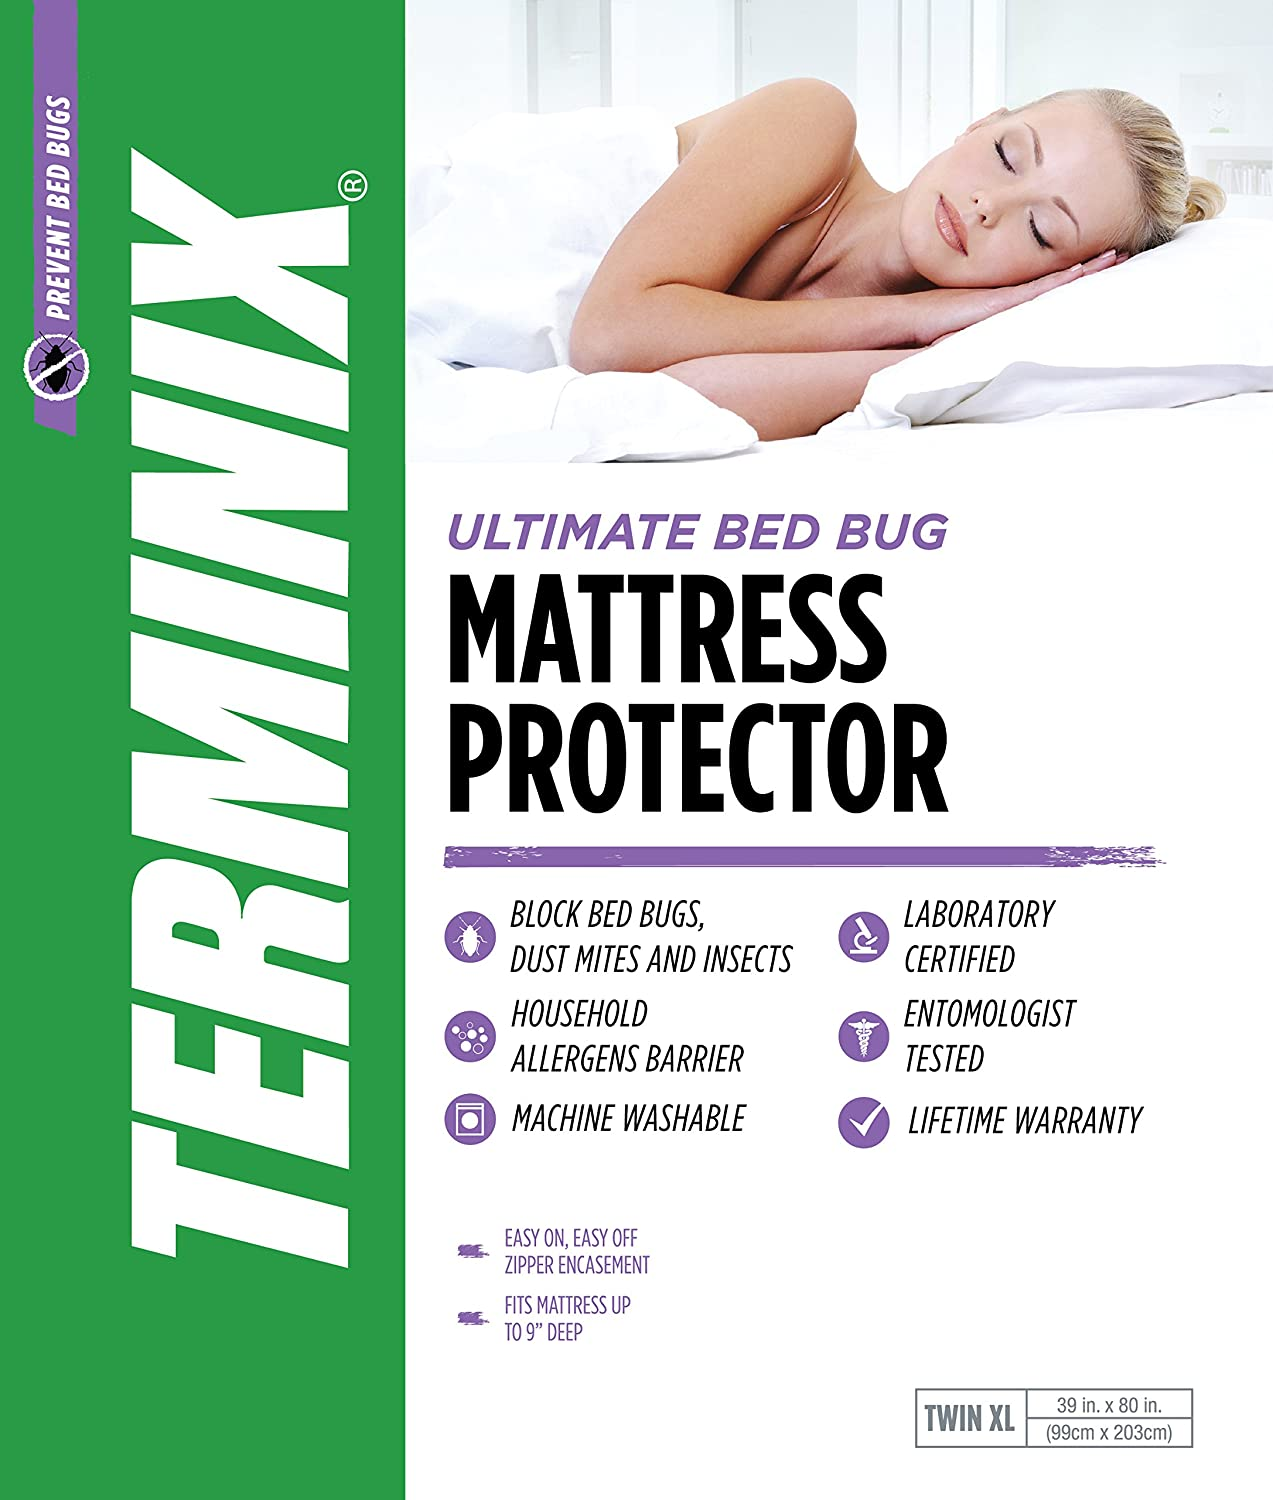 Amazon.com: TERMINIX Ultimate Mattress Protector - 6-Sided Water-Resistant  Zippered Encasement Blocks Bed Bugs, Dust Mites, Insects, & Allergens -  Machine ...